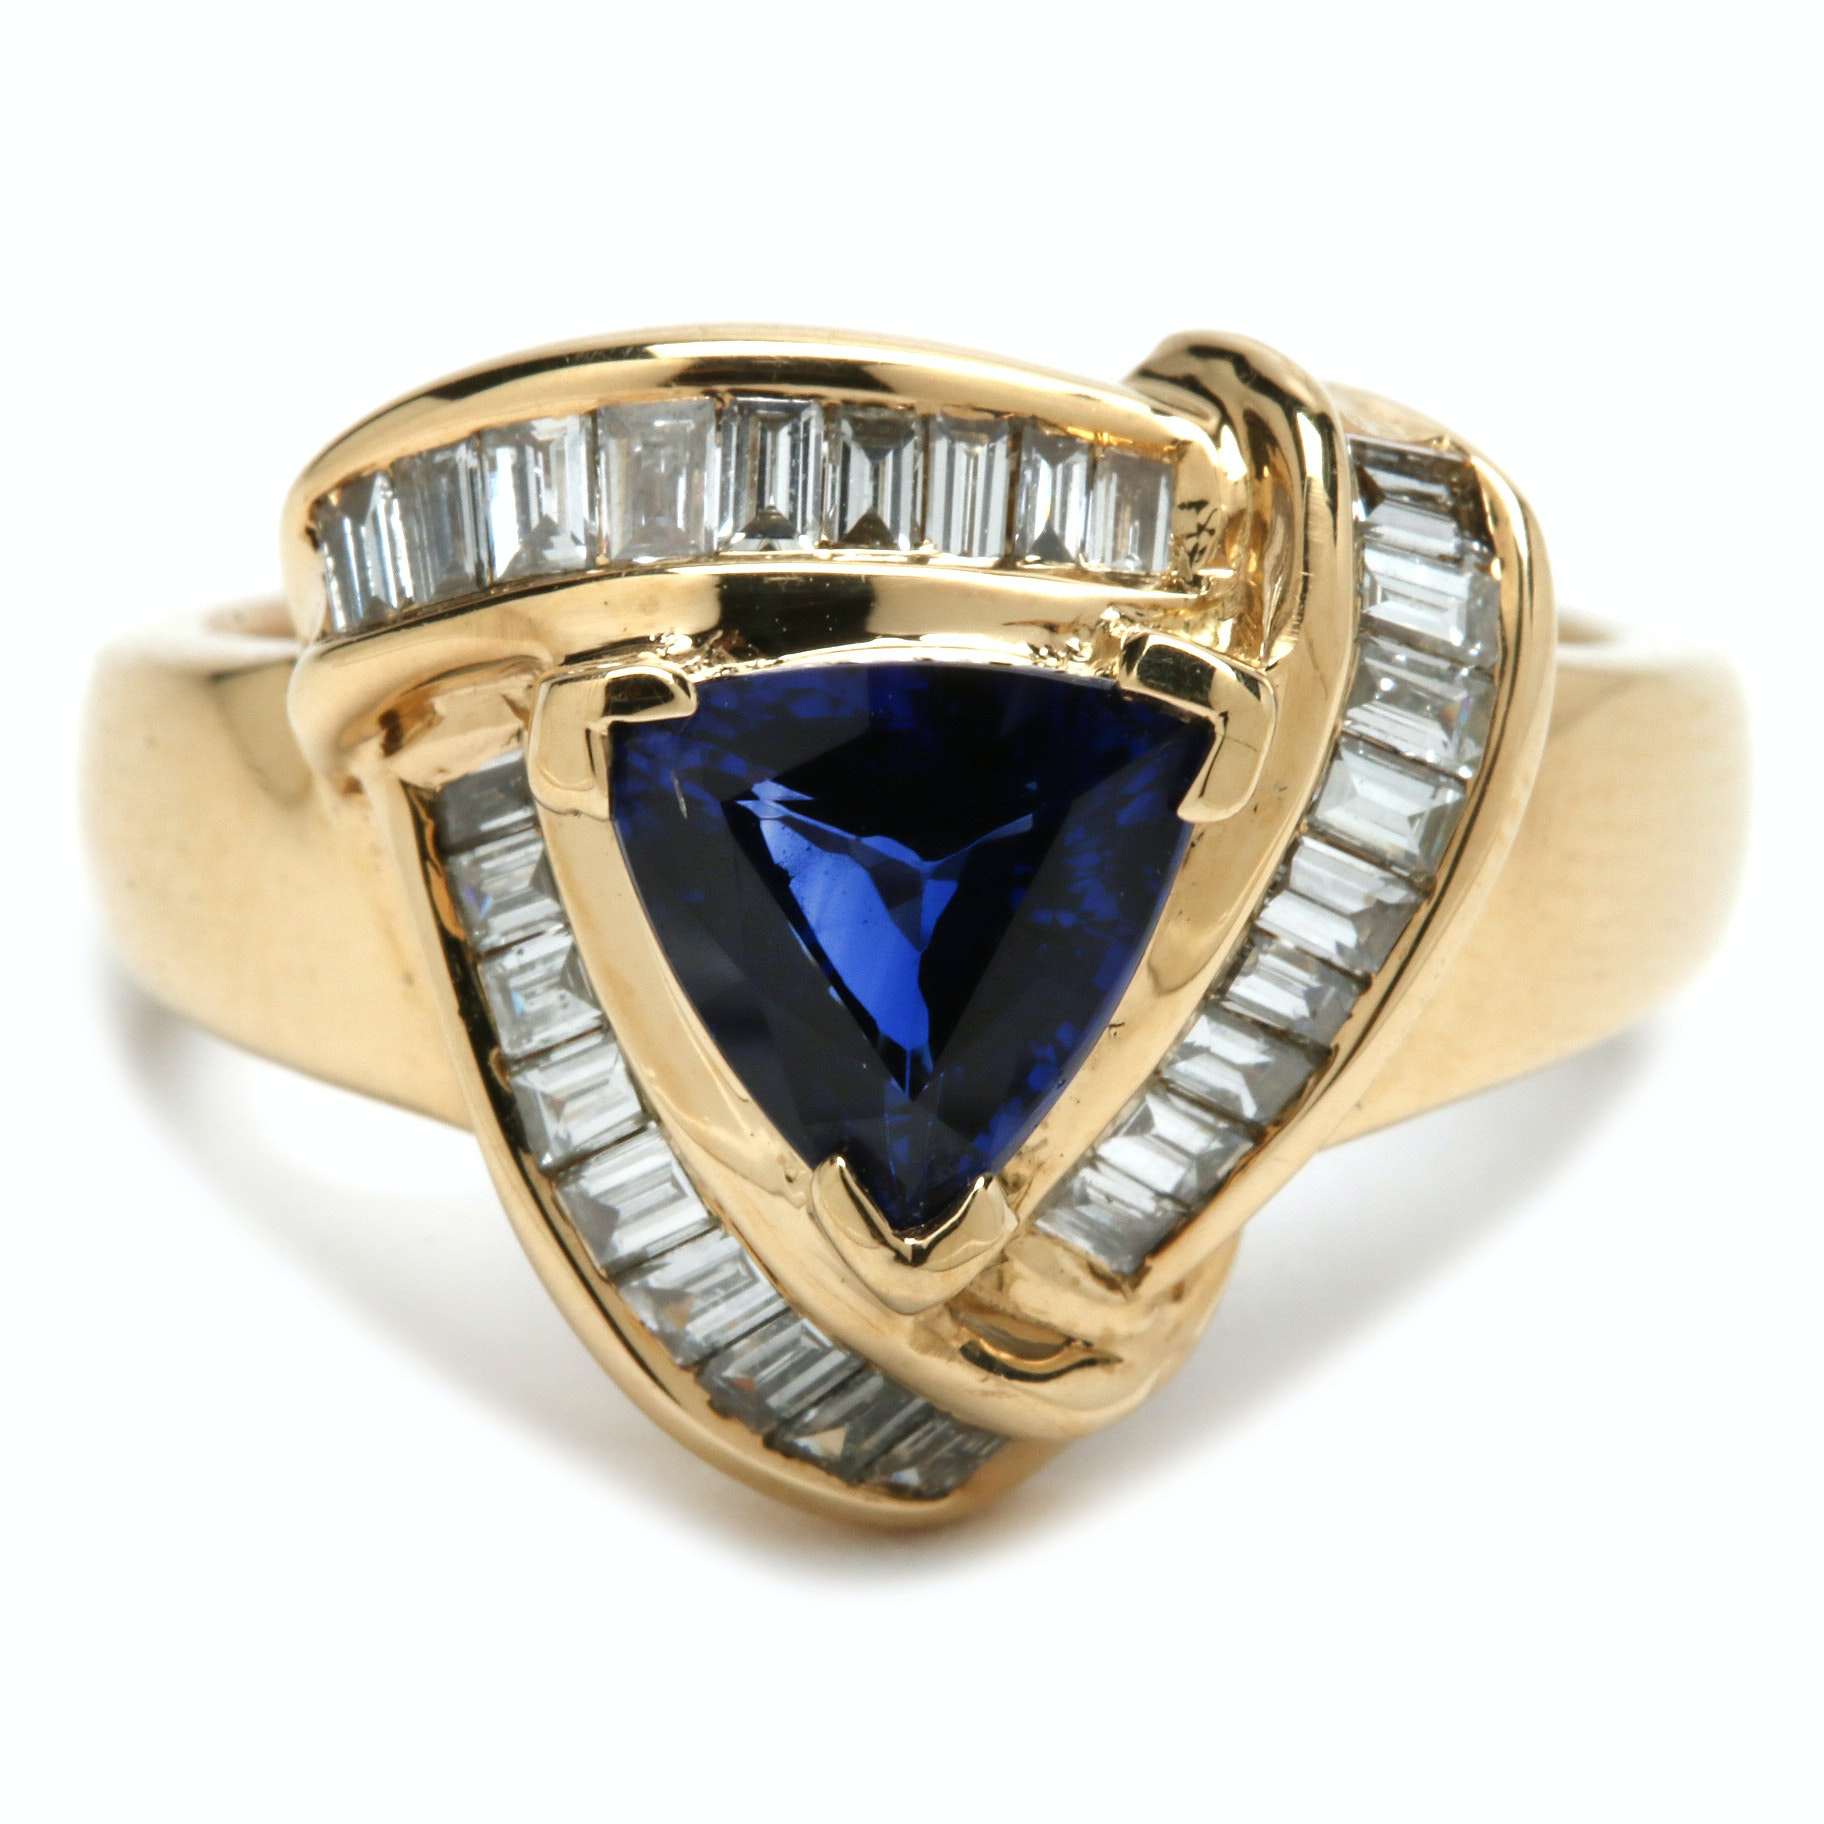 18K Yellow Gold 1.32 CT Blue Sapphire and Diamond Ring Including GIA Report